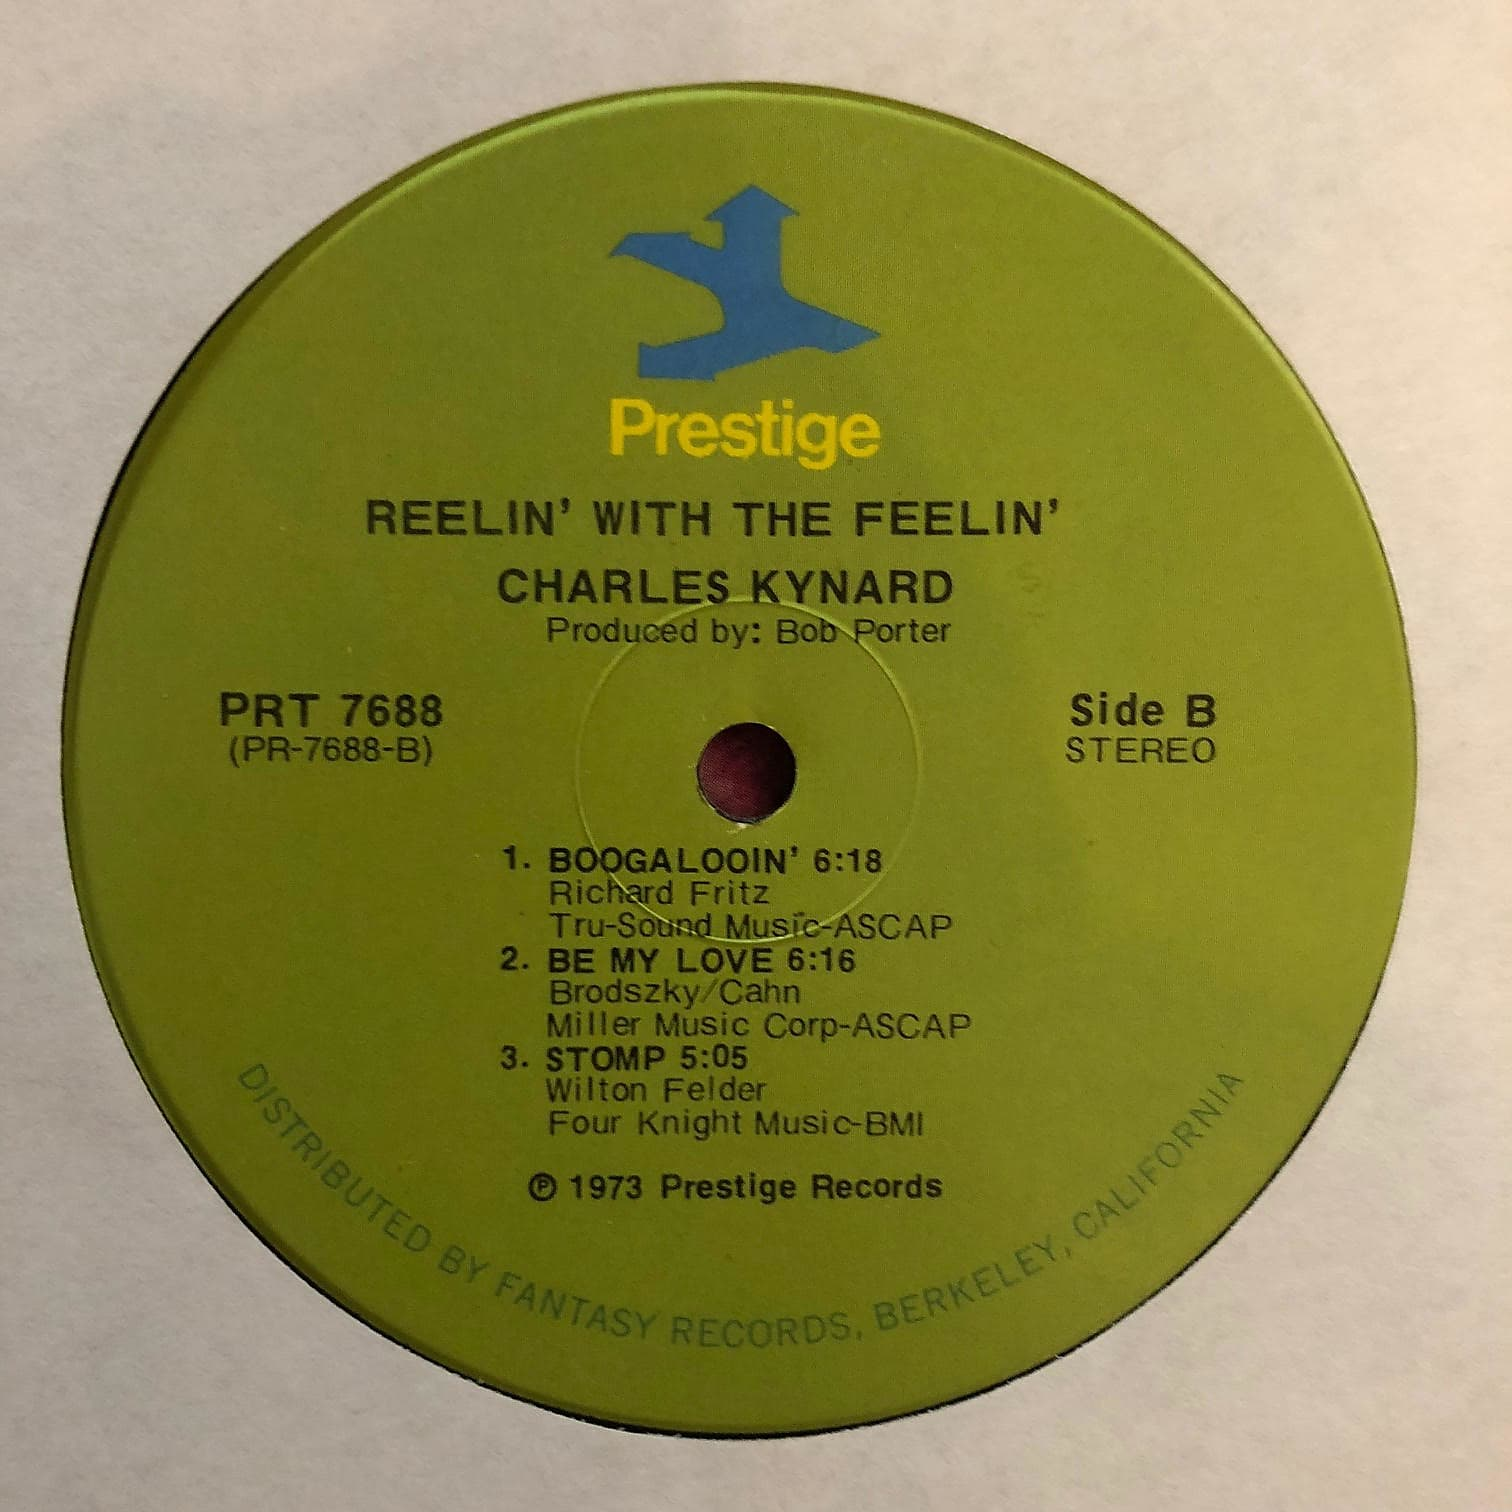 Charles Kynard - Reelin' With The Feelin' - Vinyl